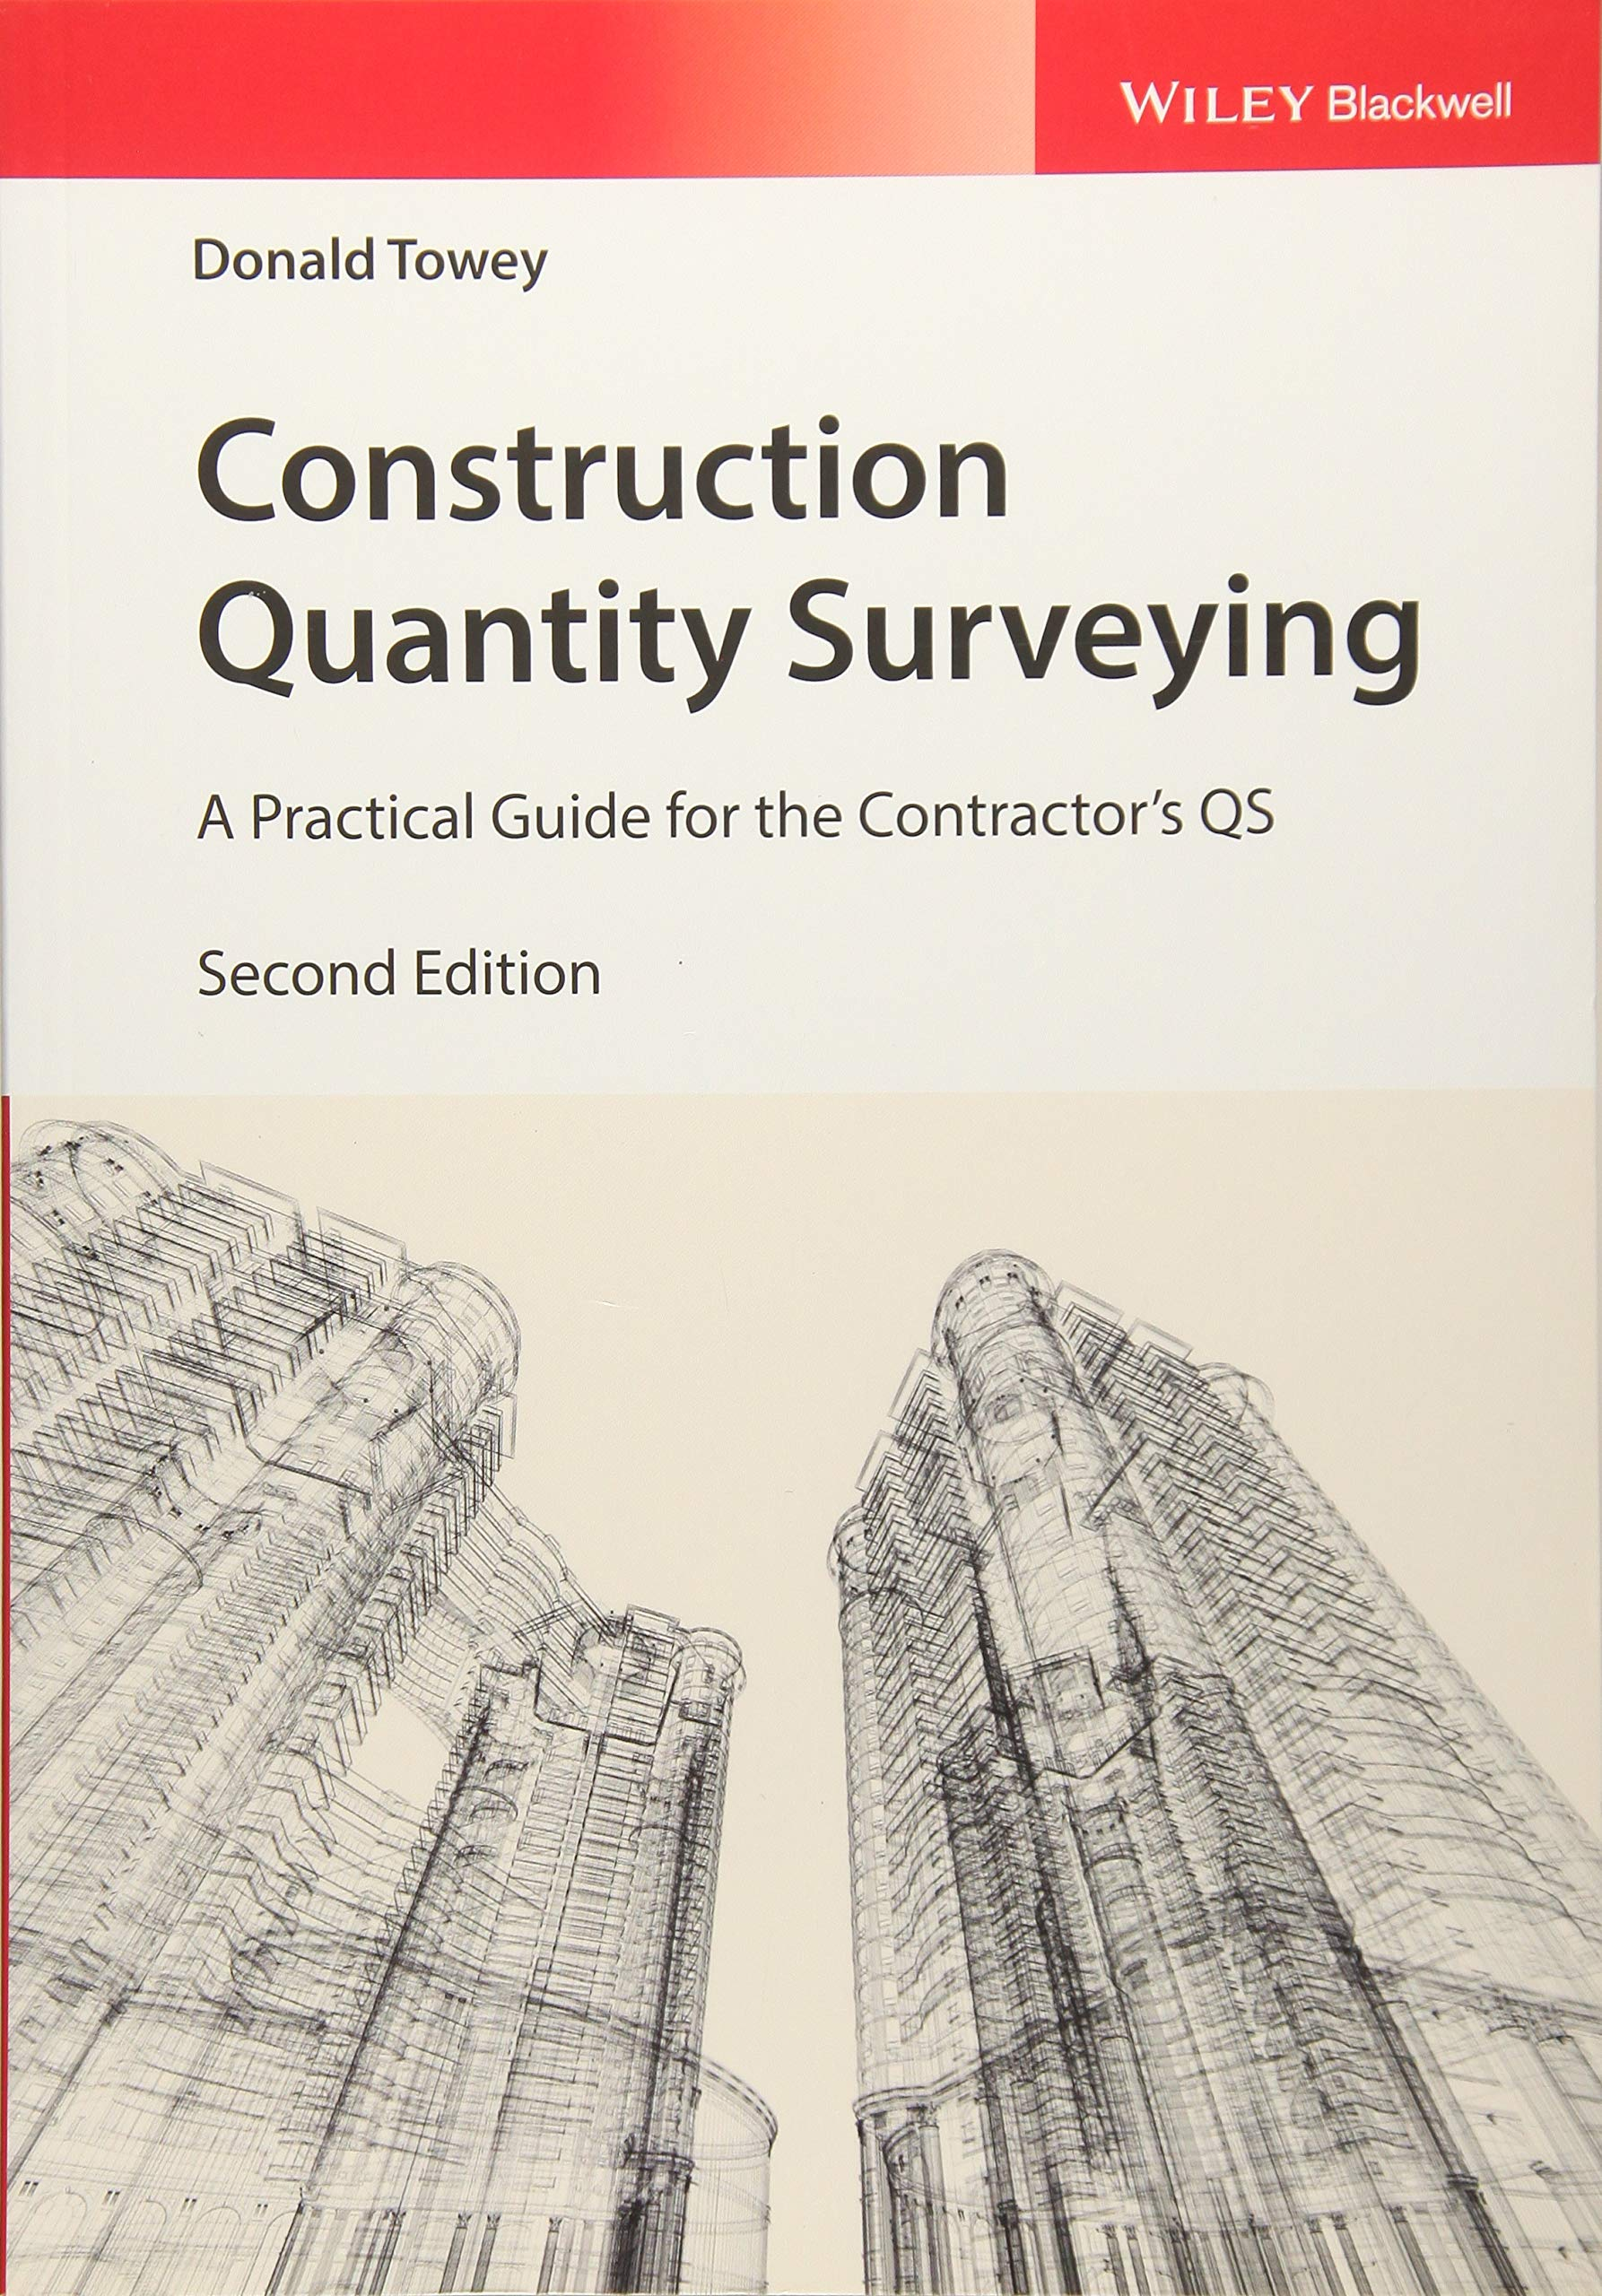 Construction Quantity Surveying: A Practical Guide for the